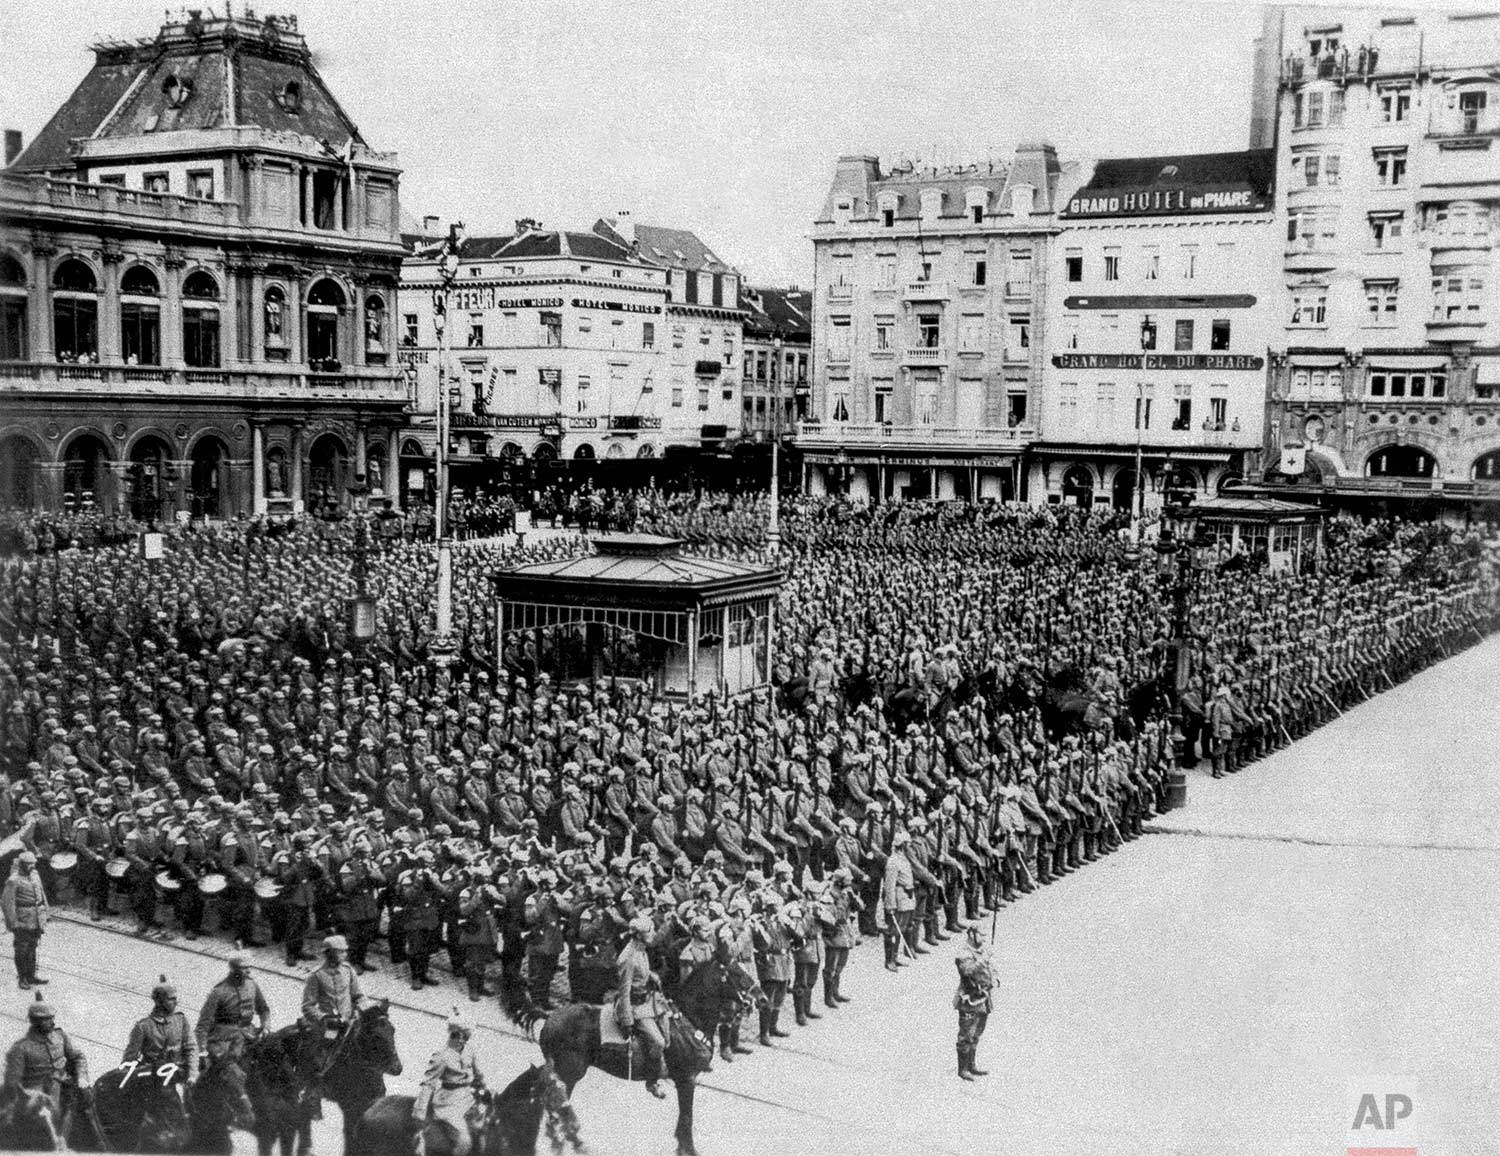 In this August 1914 photo, German troops stand in formation during the occupation of Brussels. (AP Photo)